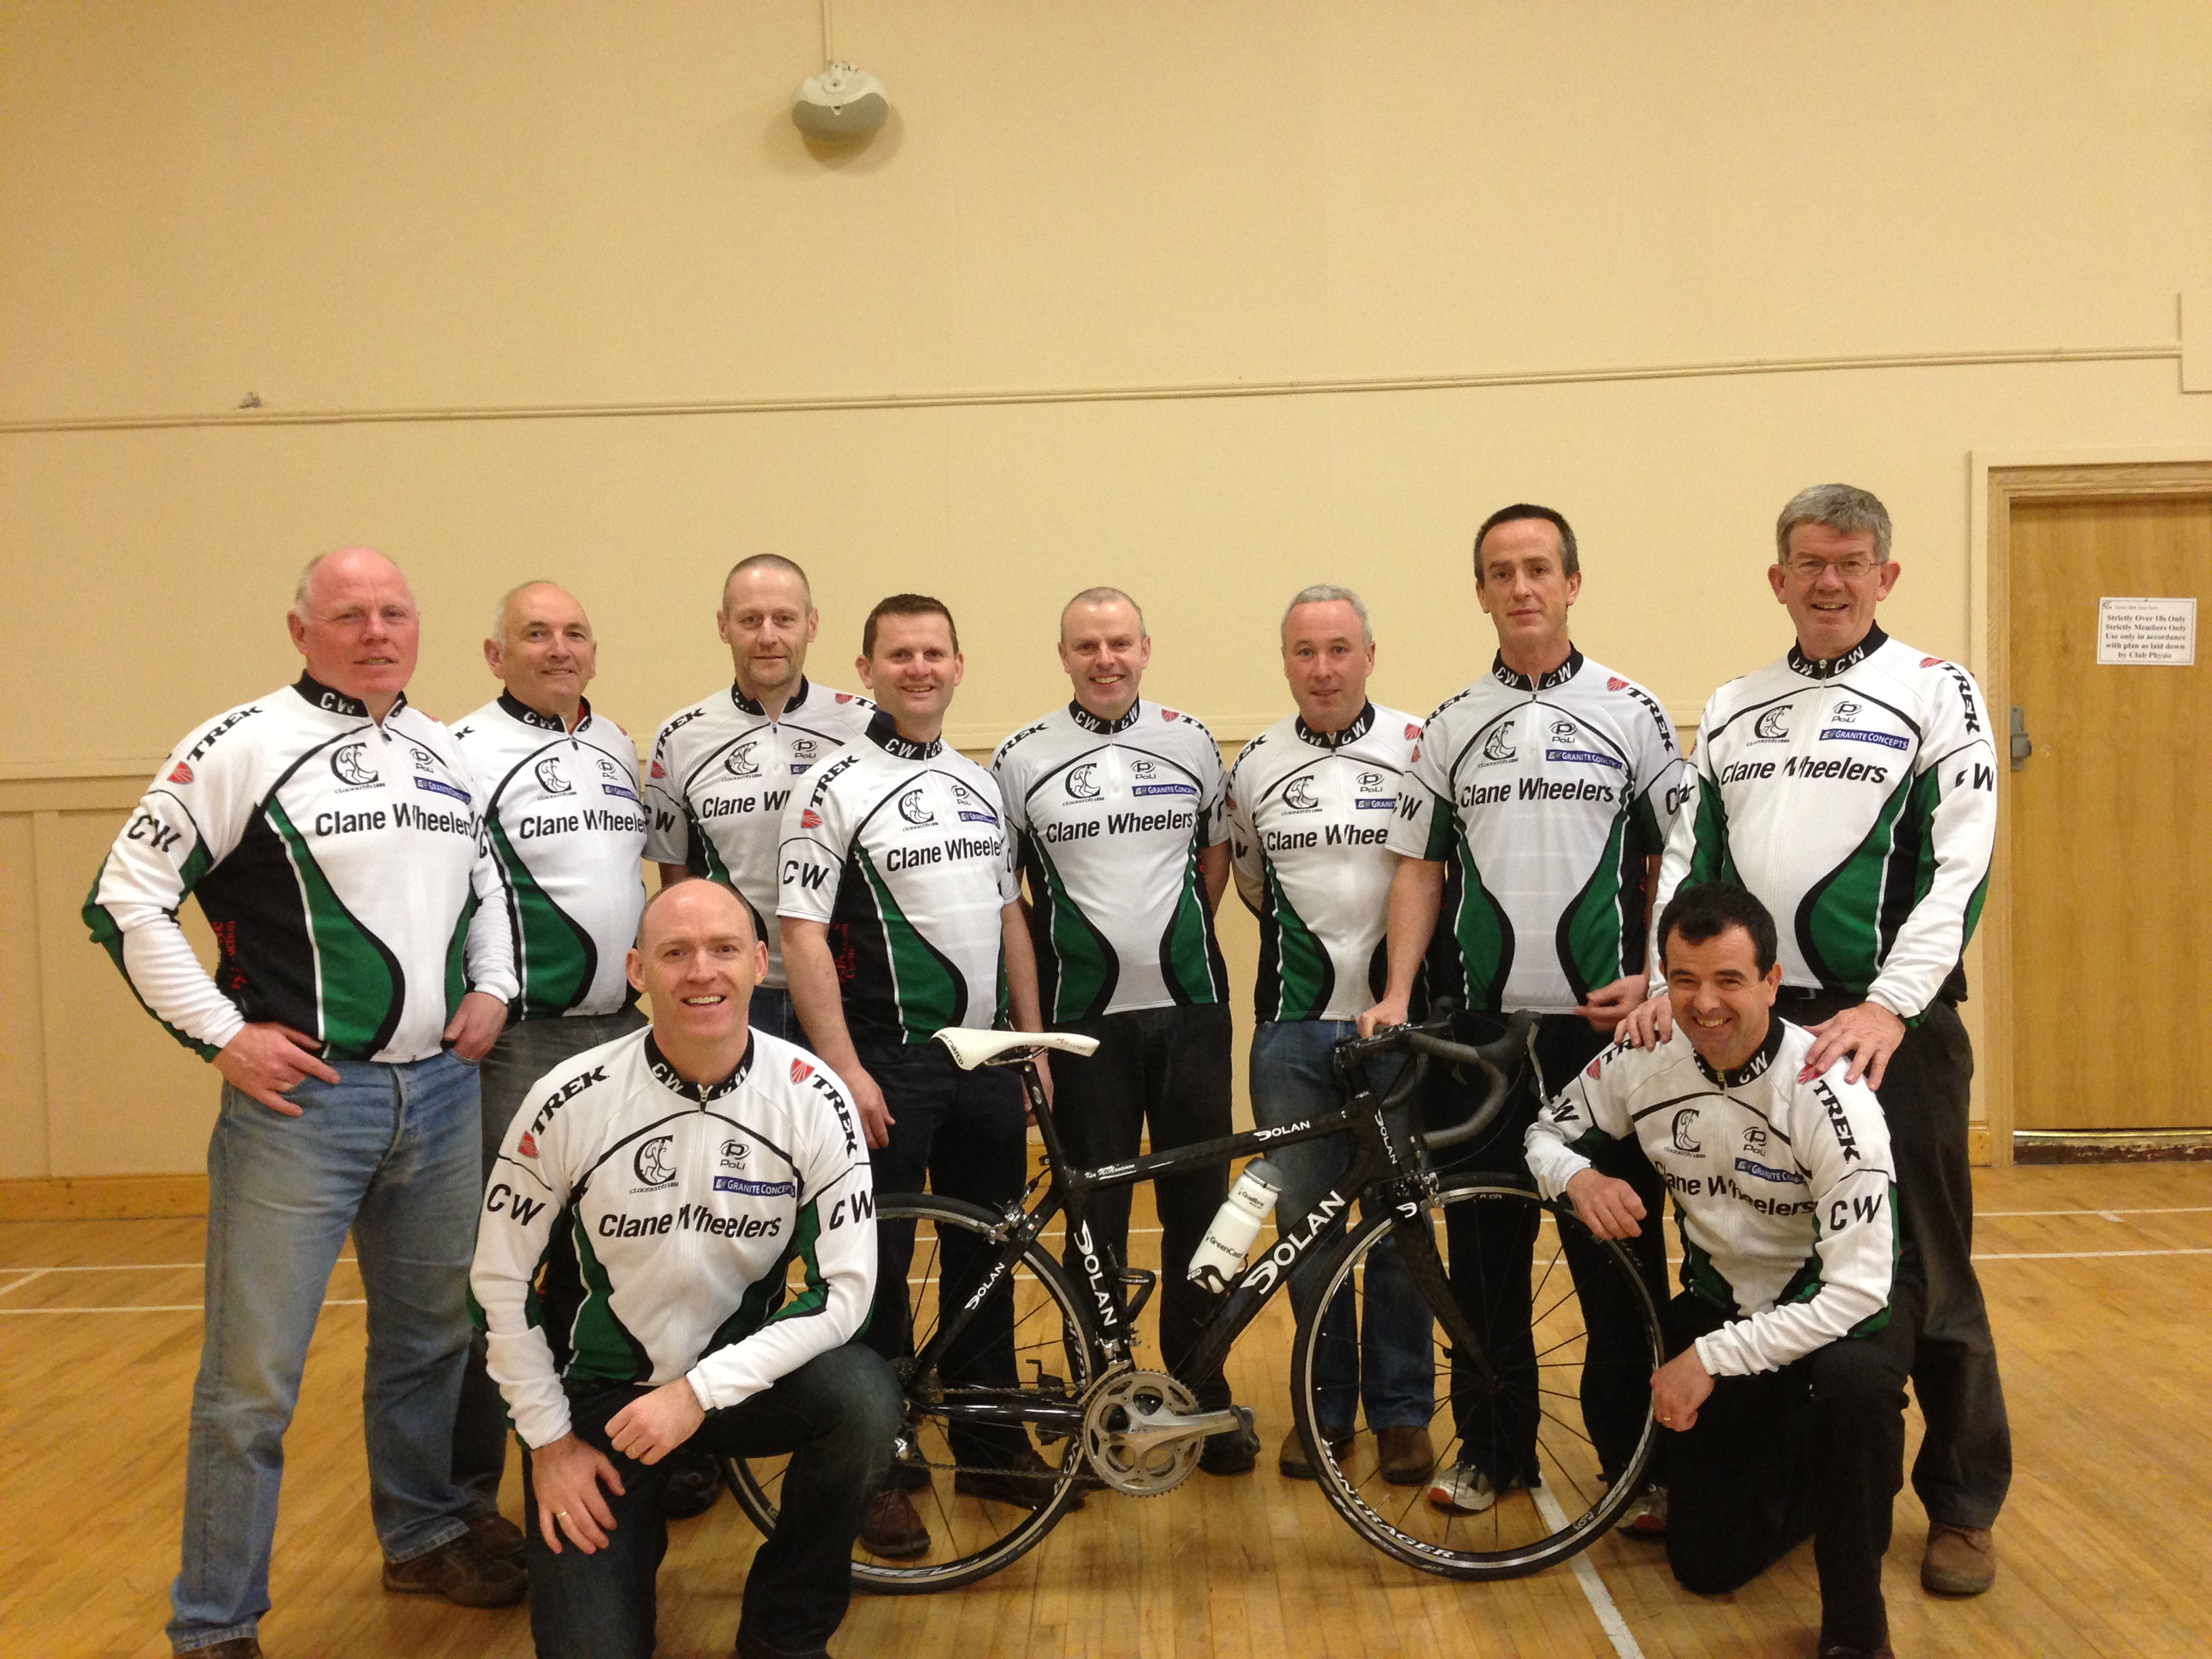 Clane Wheelers completed a very successfu Mizen to Malin fundraising cycle for Little Way